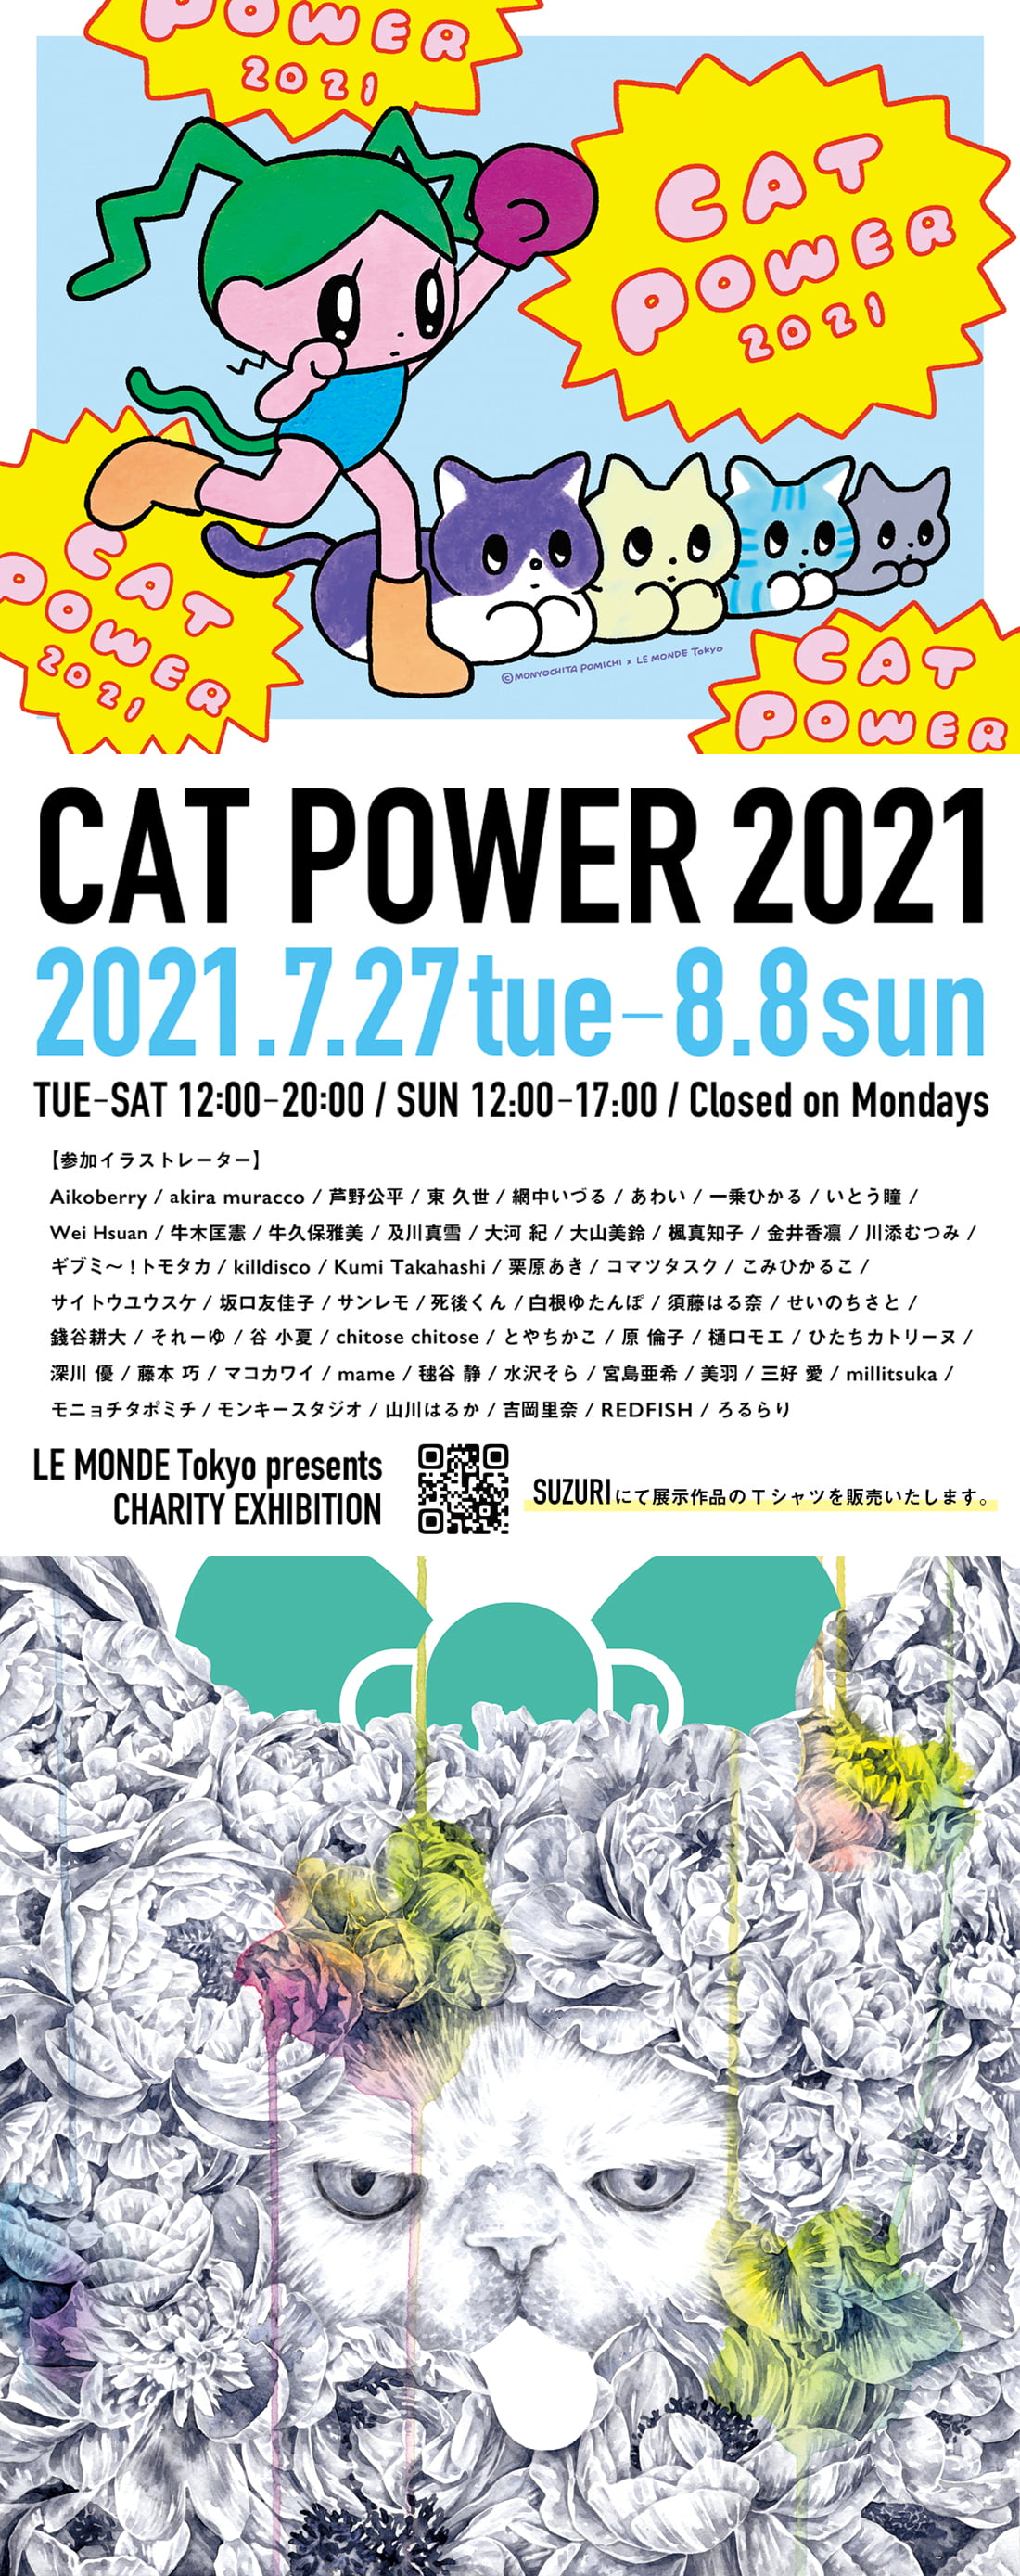 Charity Exhibition『CAT POWER 2021』